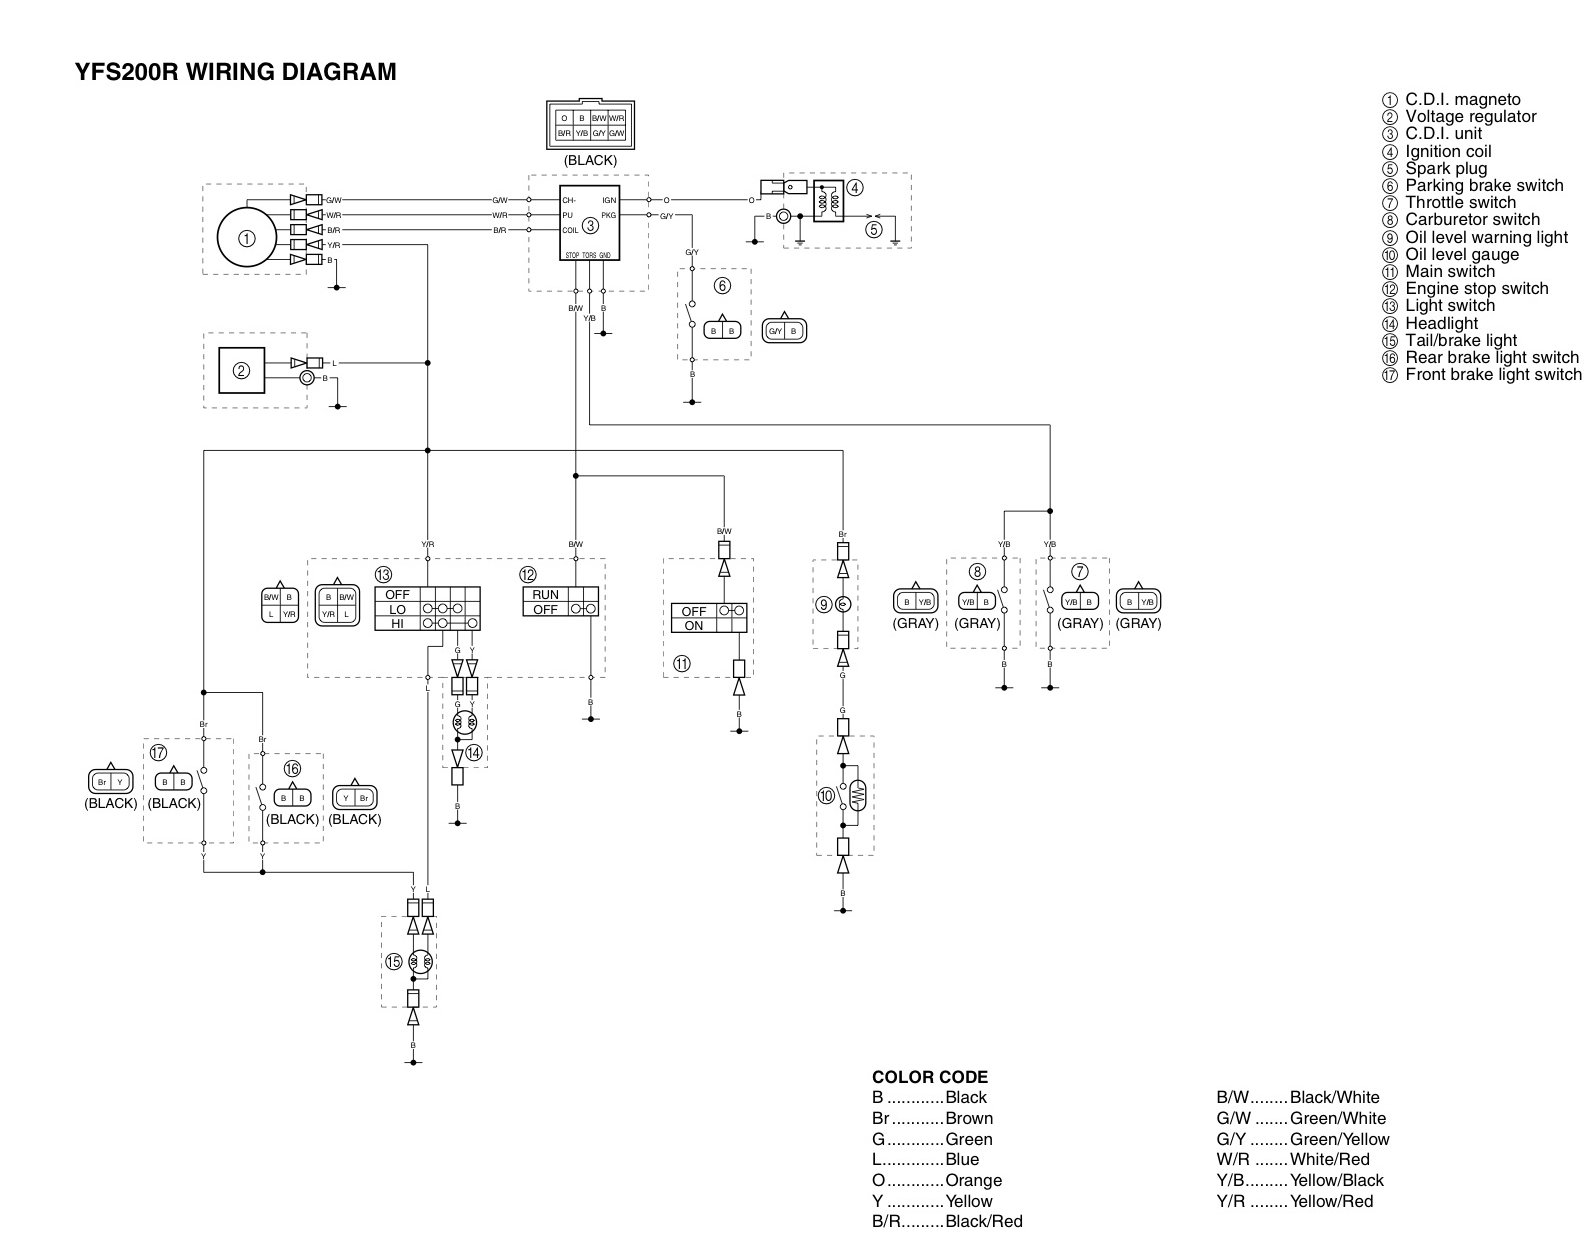 stock wiring diagrams blasterforum com wire diagram blaaster 1 jpg